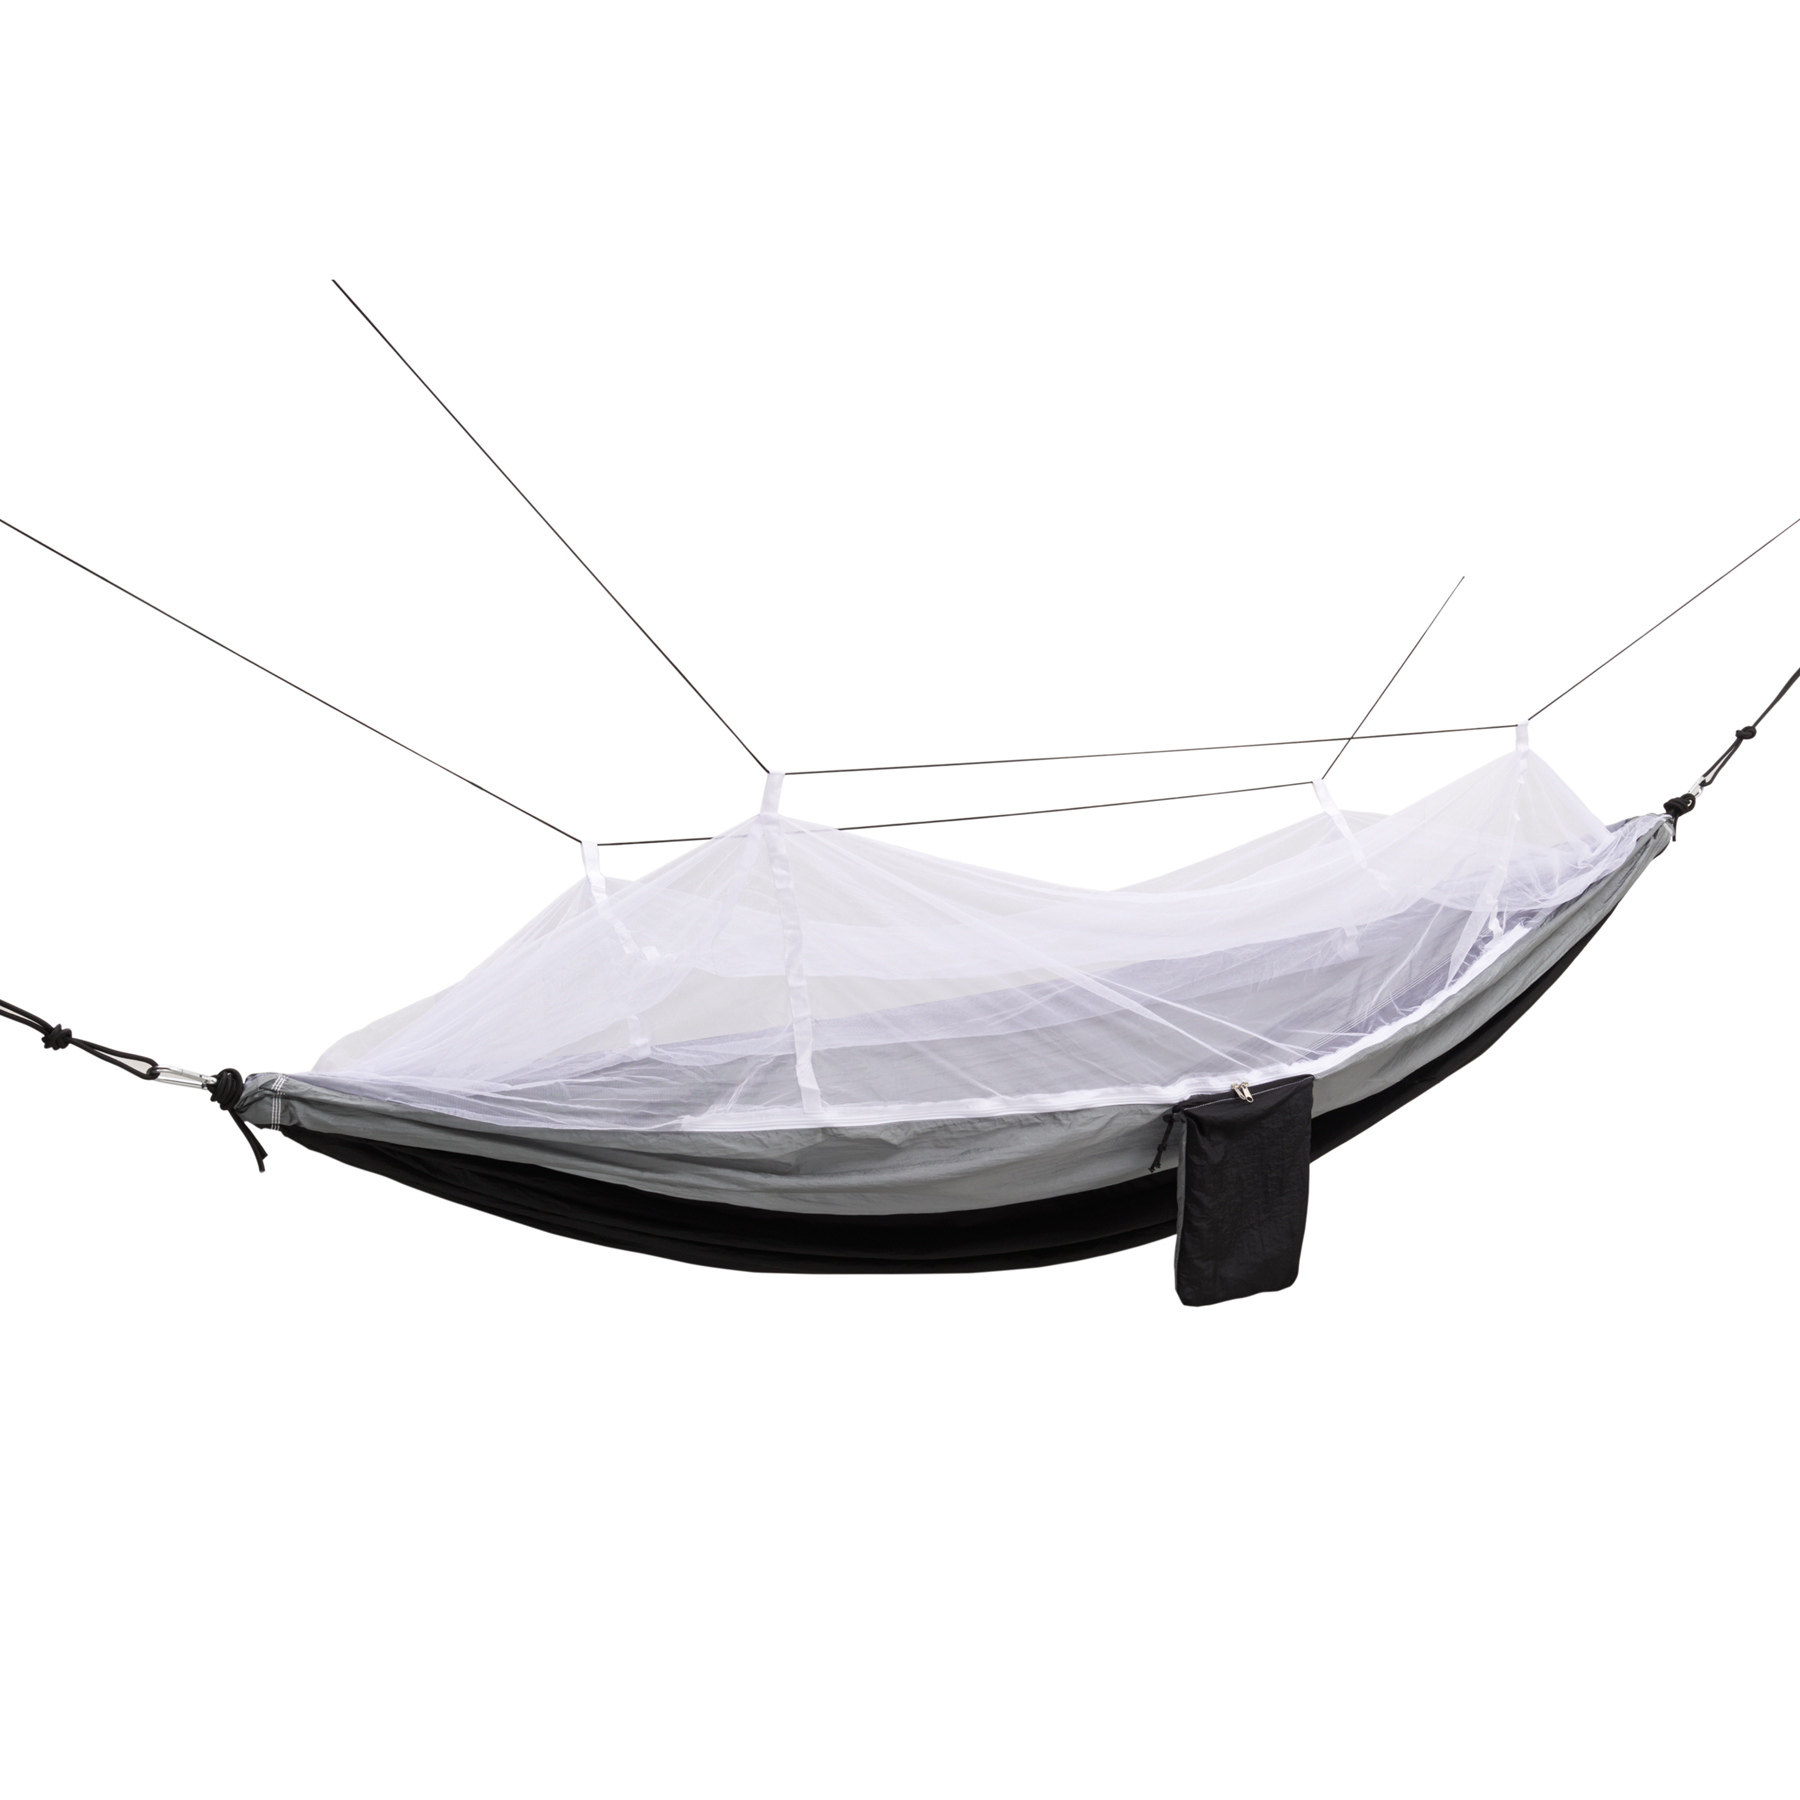 NW Survival 2 Person Parachute Outdoor Travel Hammock with Adjustable Mosquito Net by Equipped Outdoors